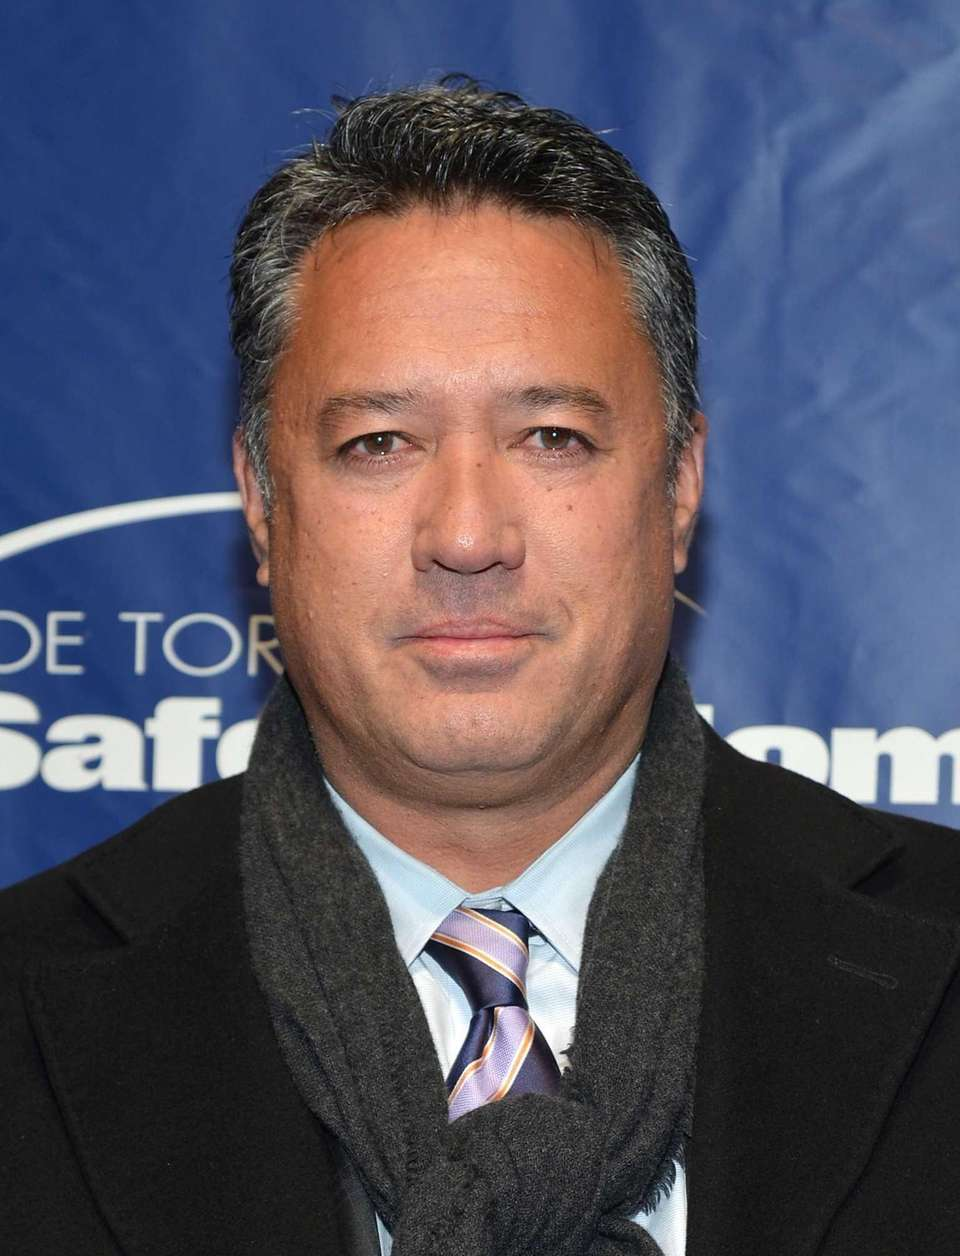 Former professional baseball player Ron Darling attends Joe